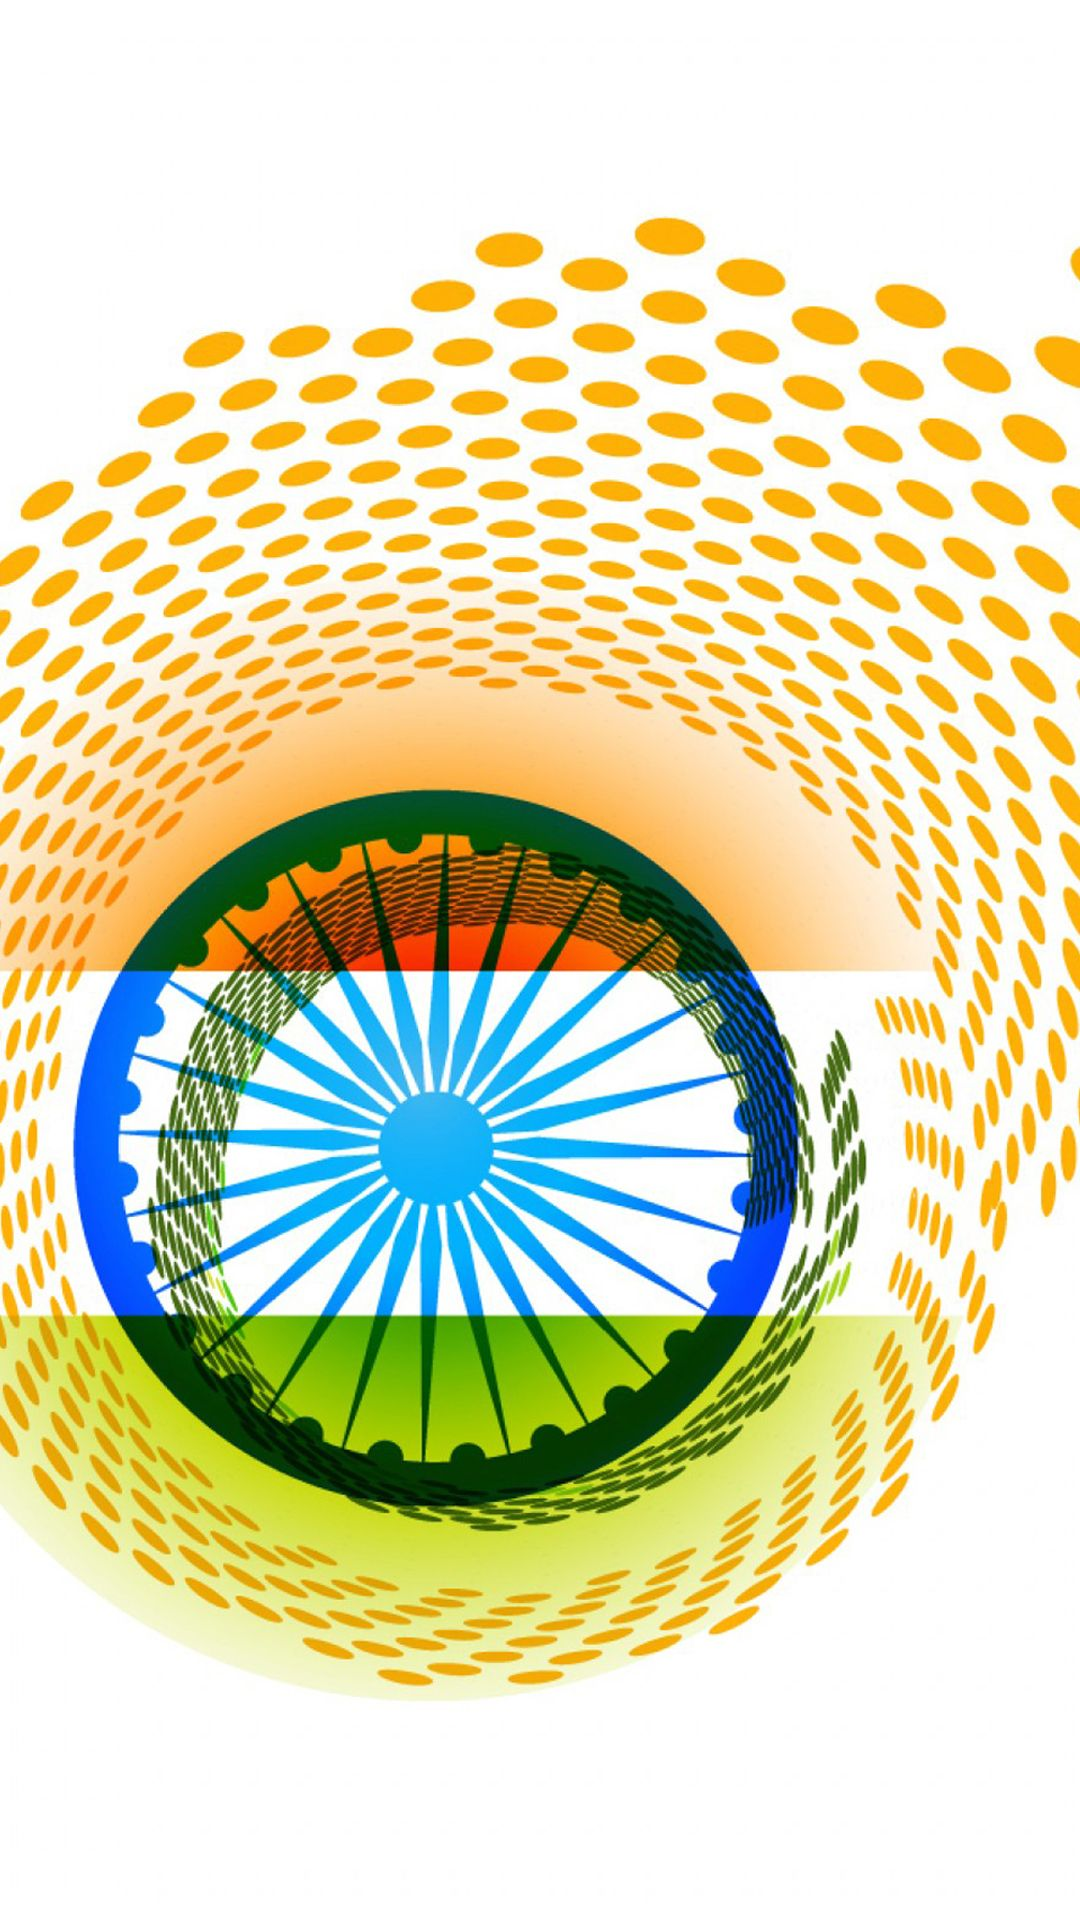 India Flag For Mobile Phone Wallpaper 10 Of 17 Proud To Be An